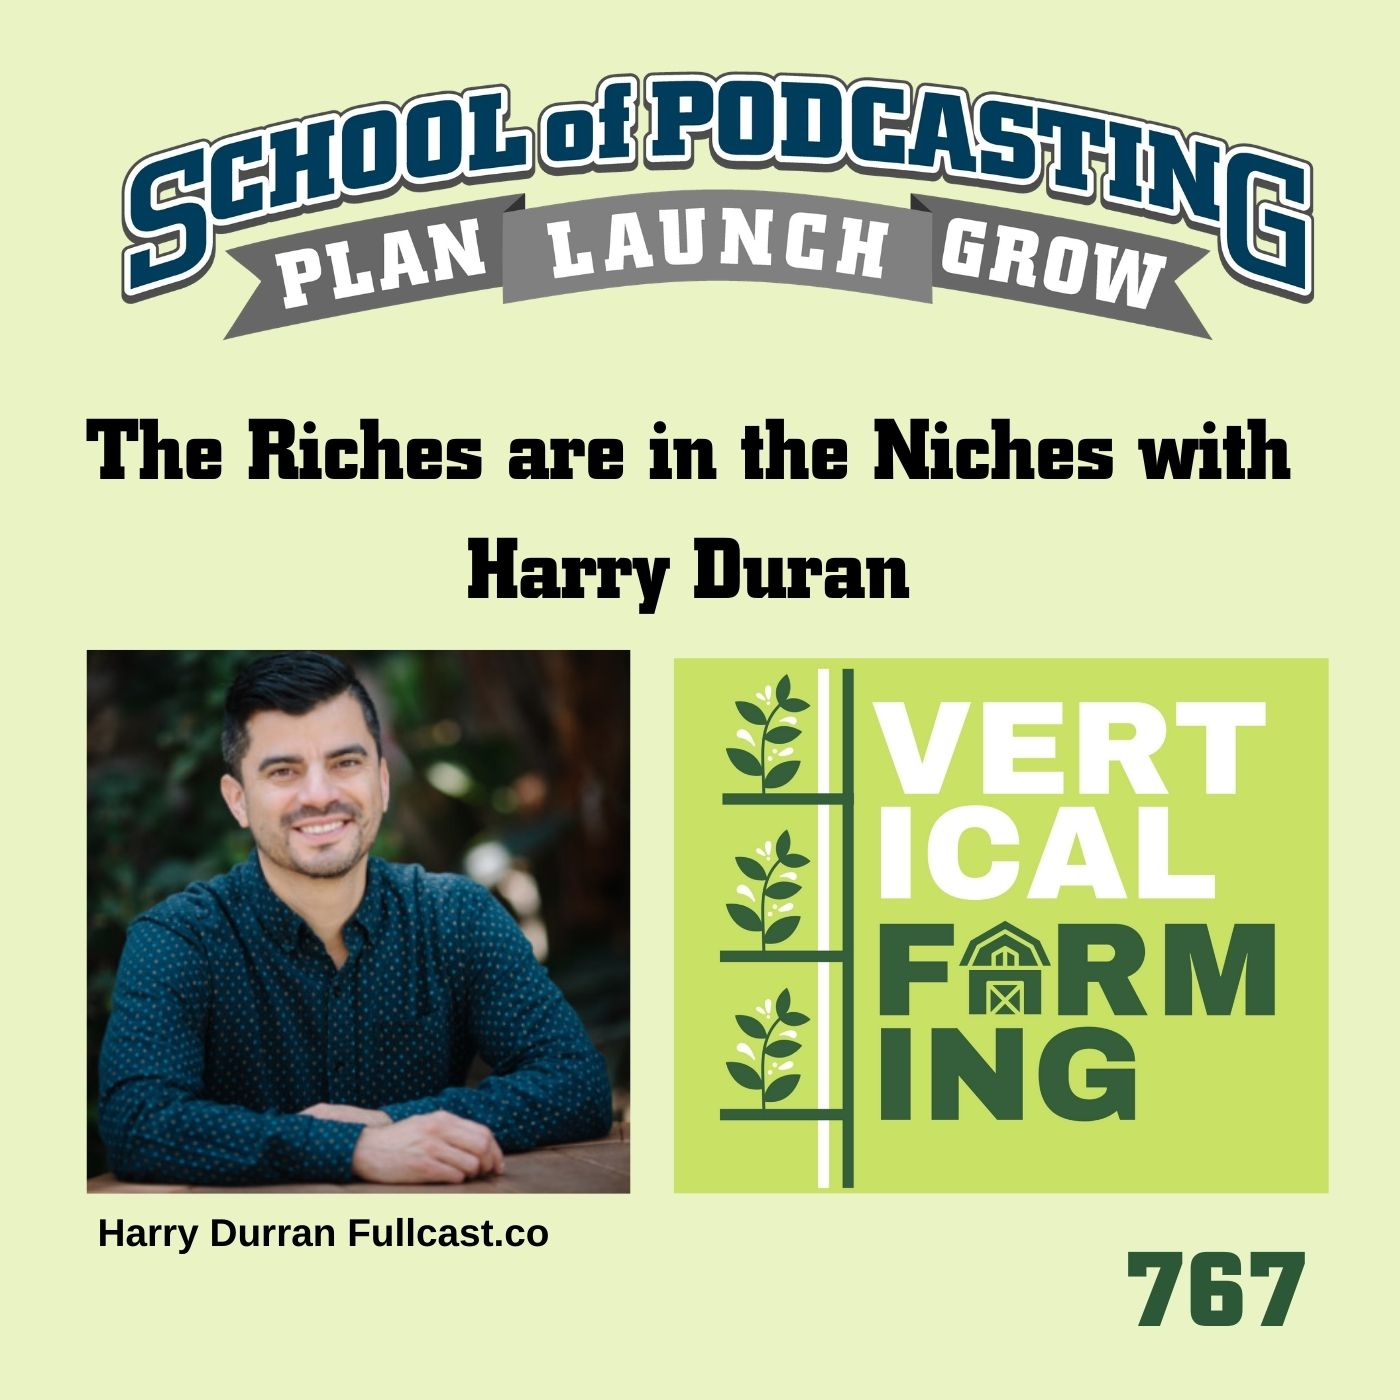 The Riches are in the Niches With Harry Duran